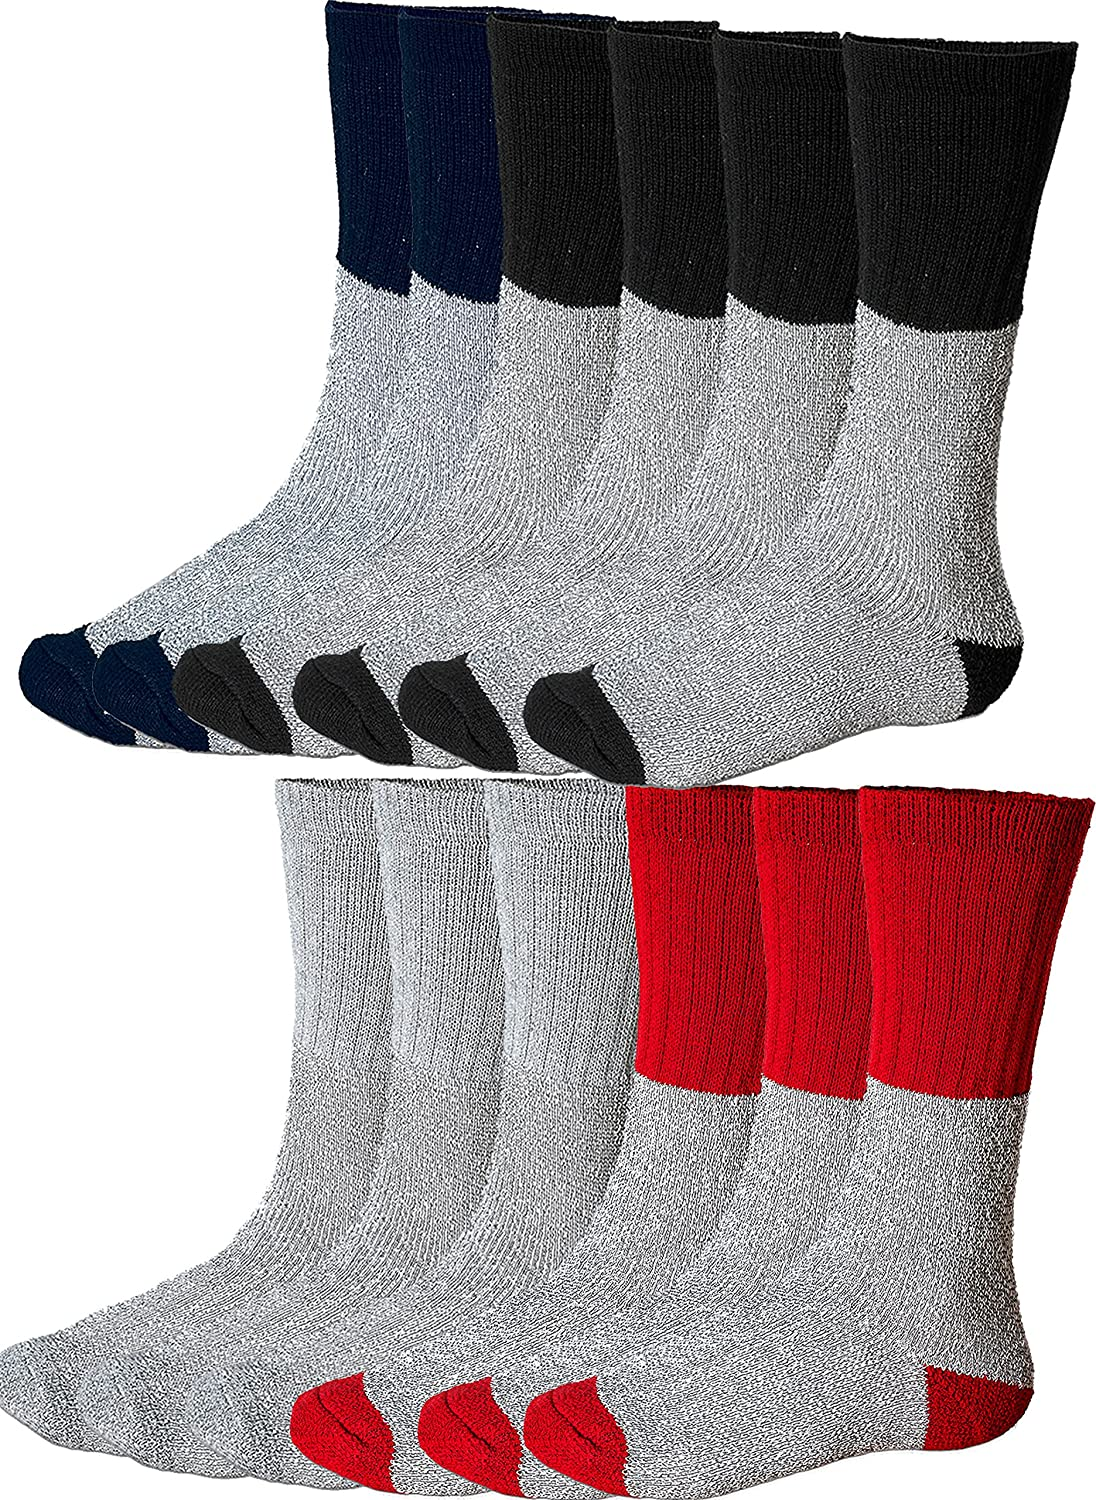 3,12Pairs Men/'s Super Warm Heavy ThermaI double lnsulated WlNTER Socks ONE SlZE